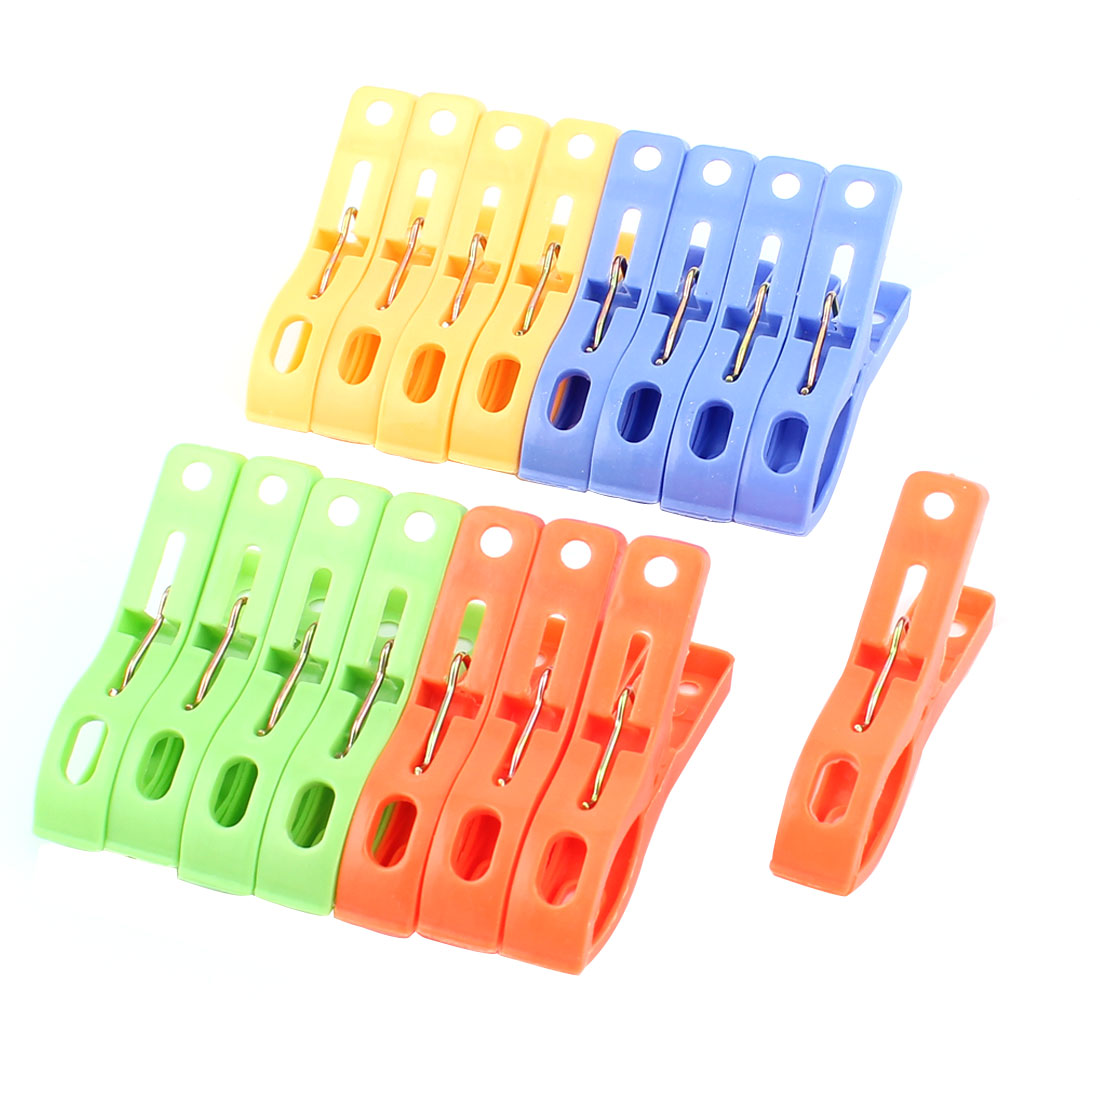 16 Pcs Household Plastic Nonslip Multipurpose Hanging Clothing Clothespins Clips Multicolour